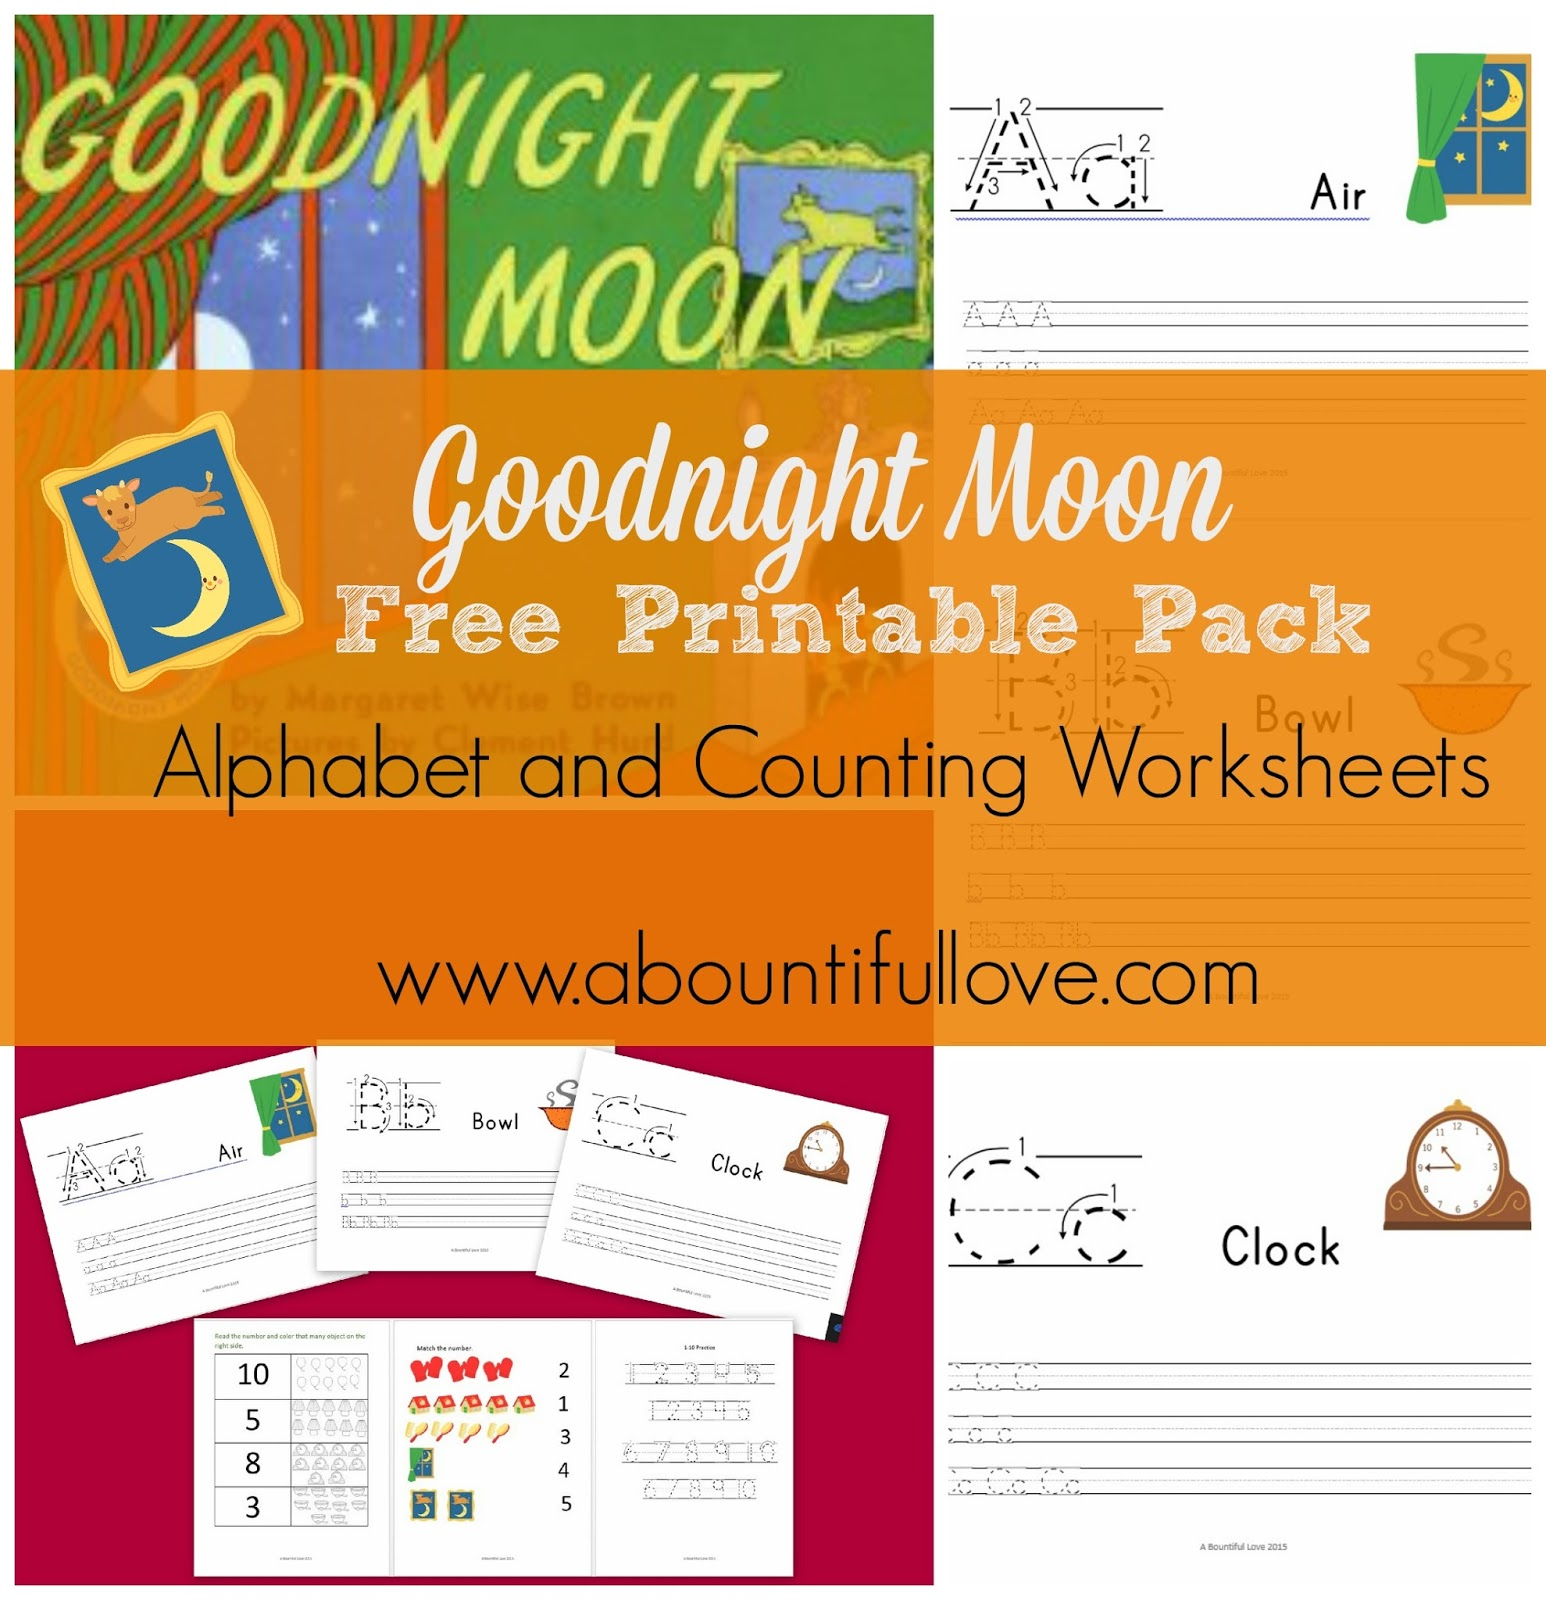 a bountiful love goodnight moon free printable pack